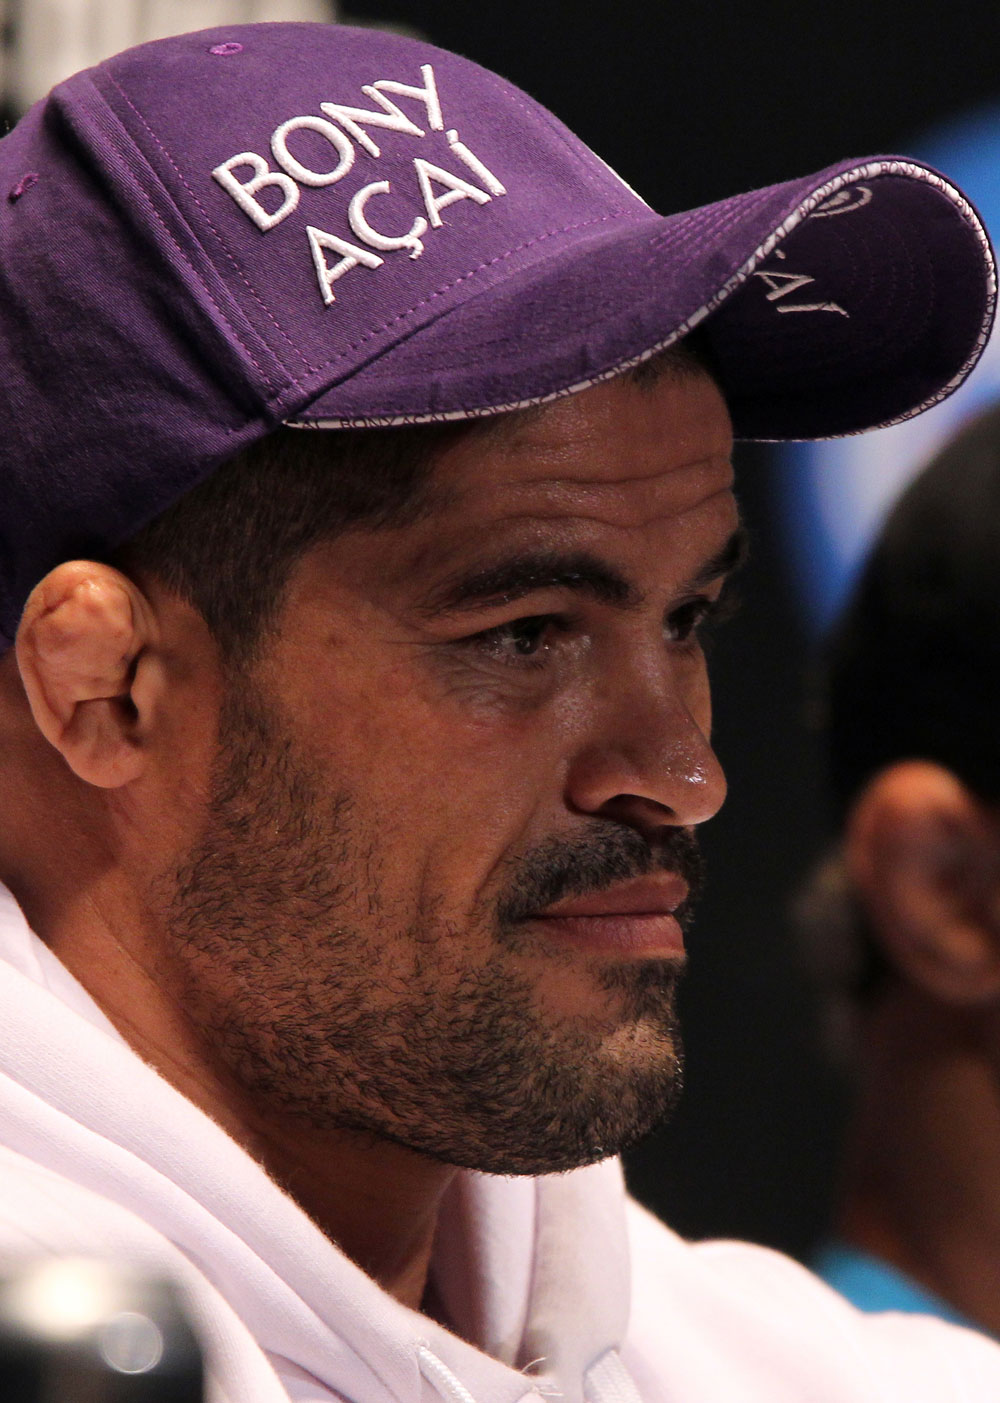 NEW YORK, NY - MAY 03:  Rousimar Palhares attends the UFC on FOX pre-fight press conference at Beacon Theatre on May 3, 2012 in New York City.  (Photo by Josh Hedges/Zuffa LLC/Zuffa LLC via Getty Images)